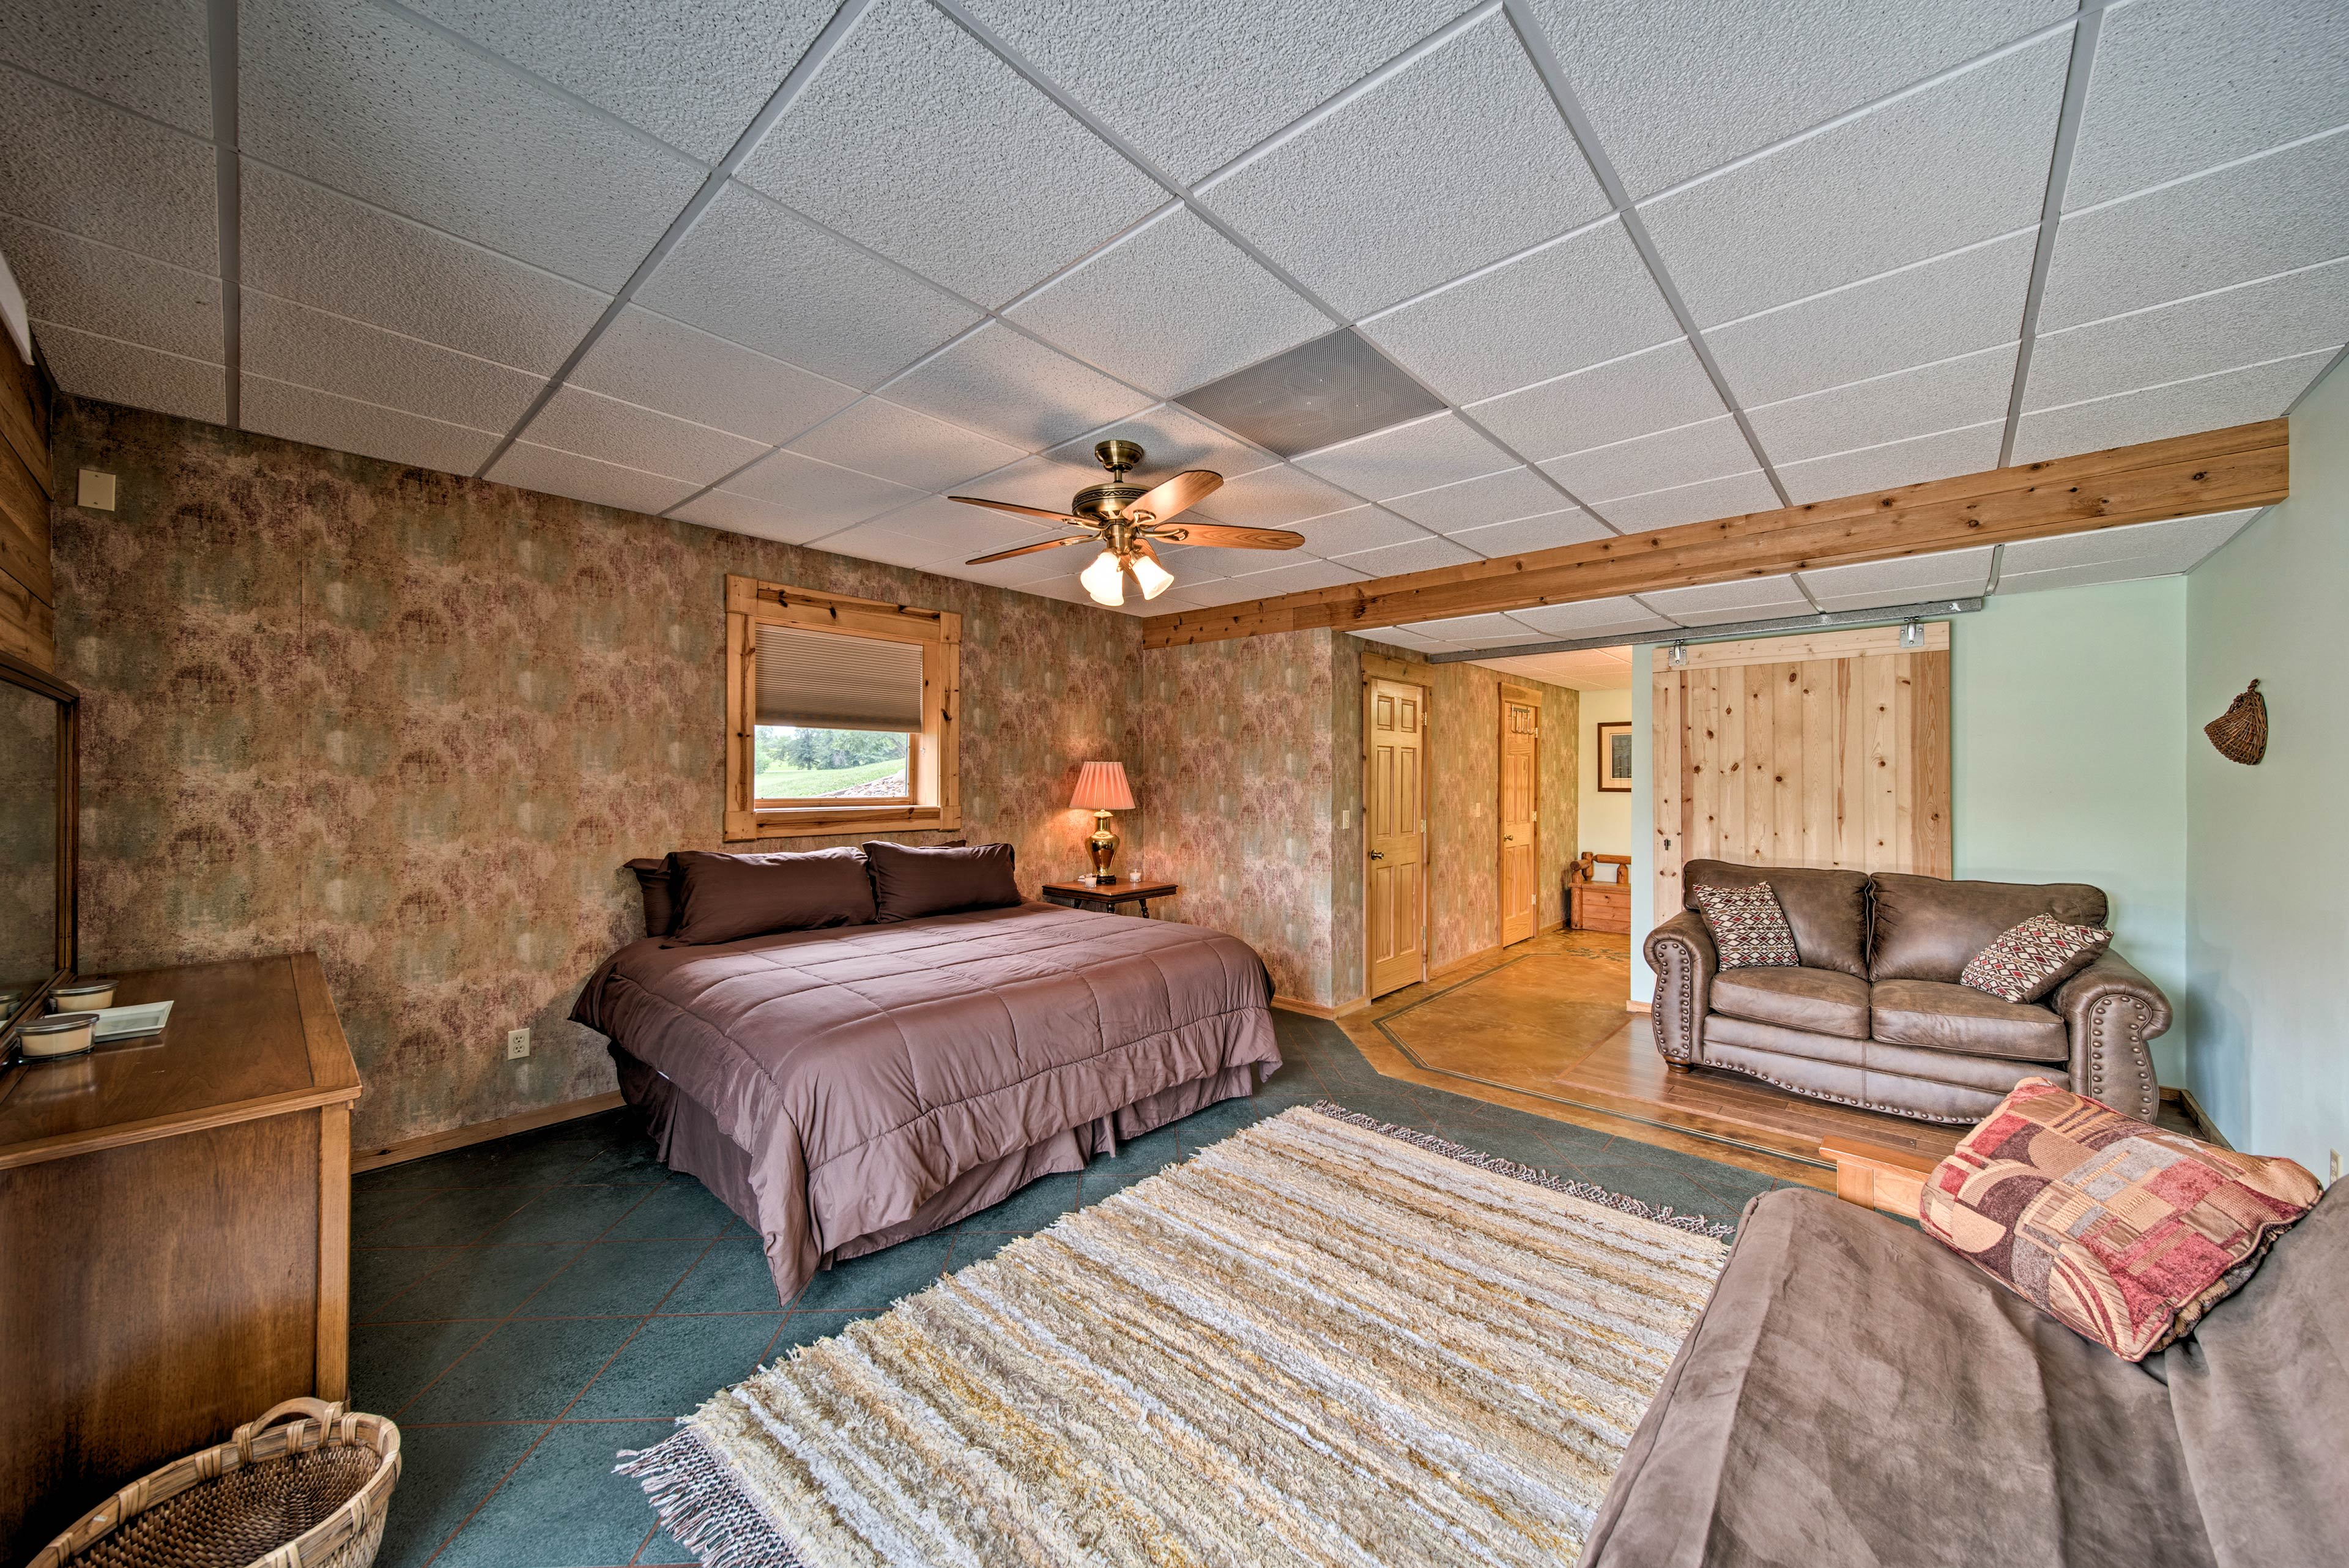 This king bed easily sleeps 2! More accommodations are available on the futon.